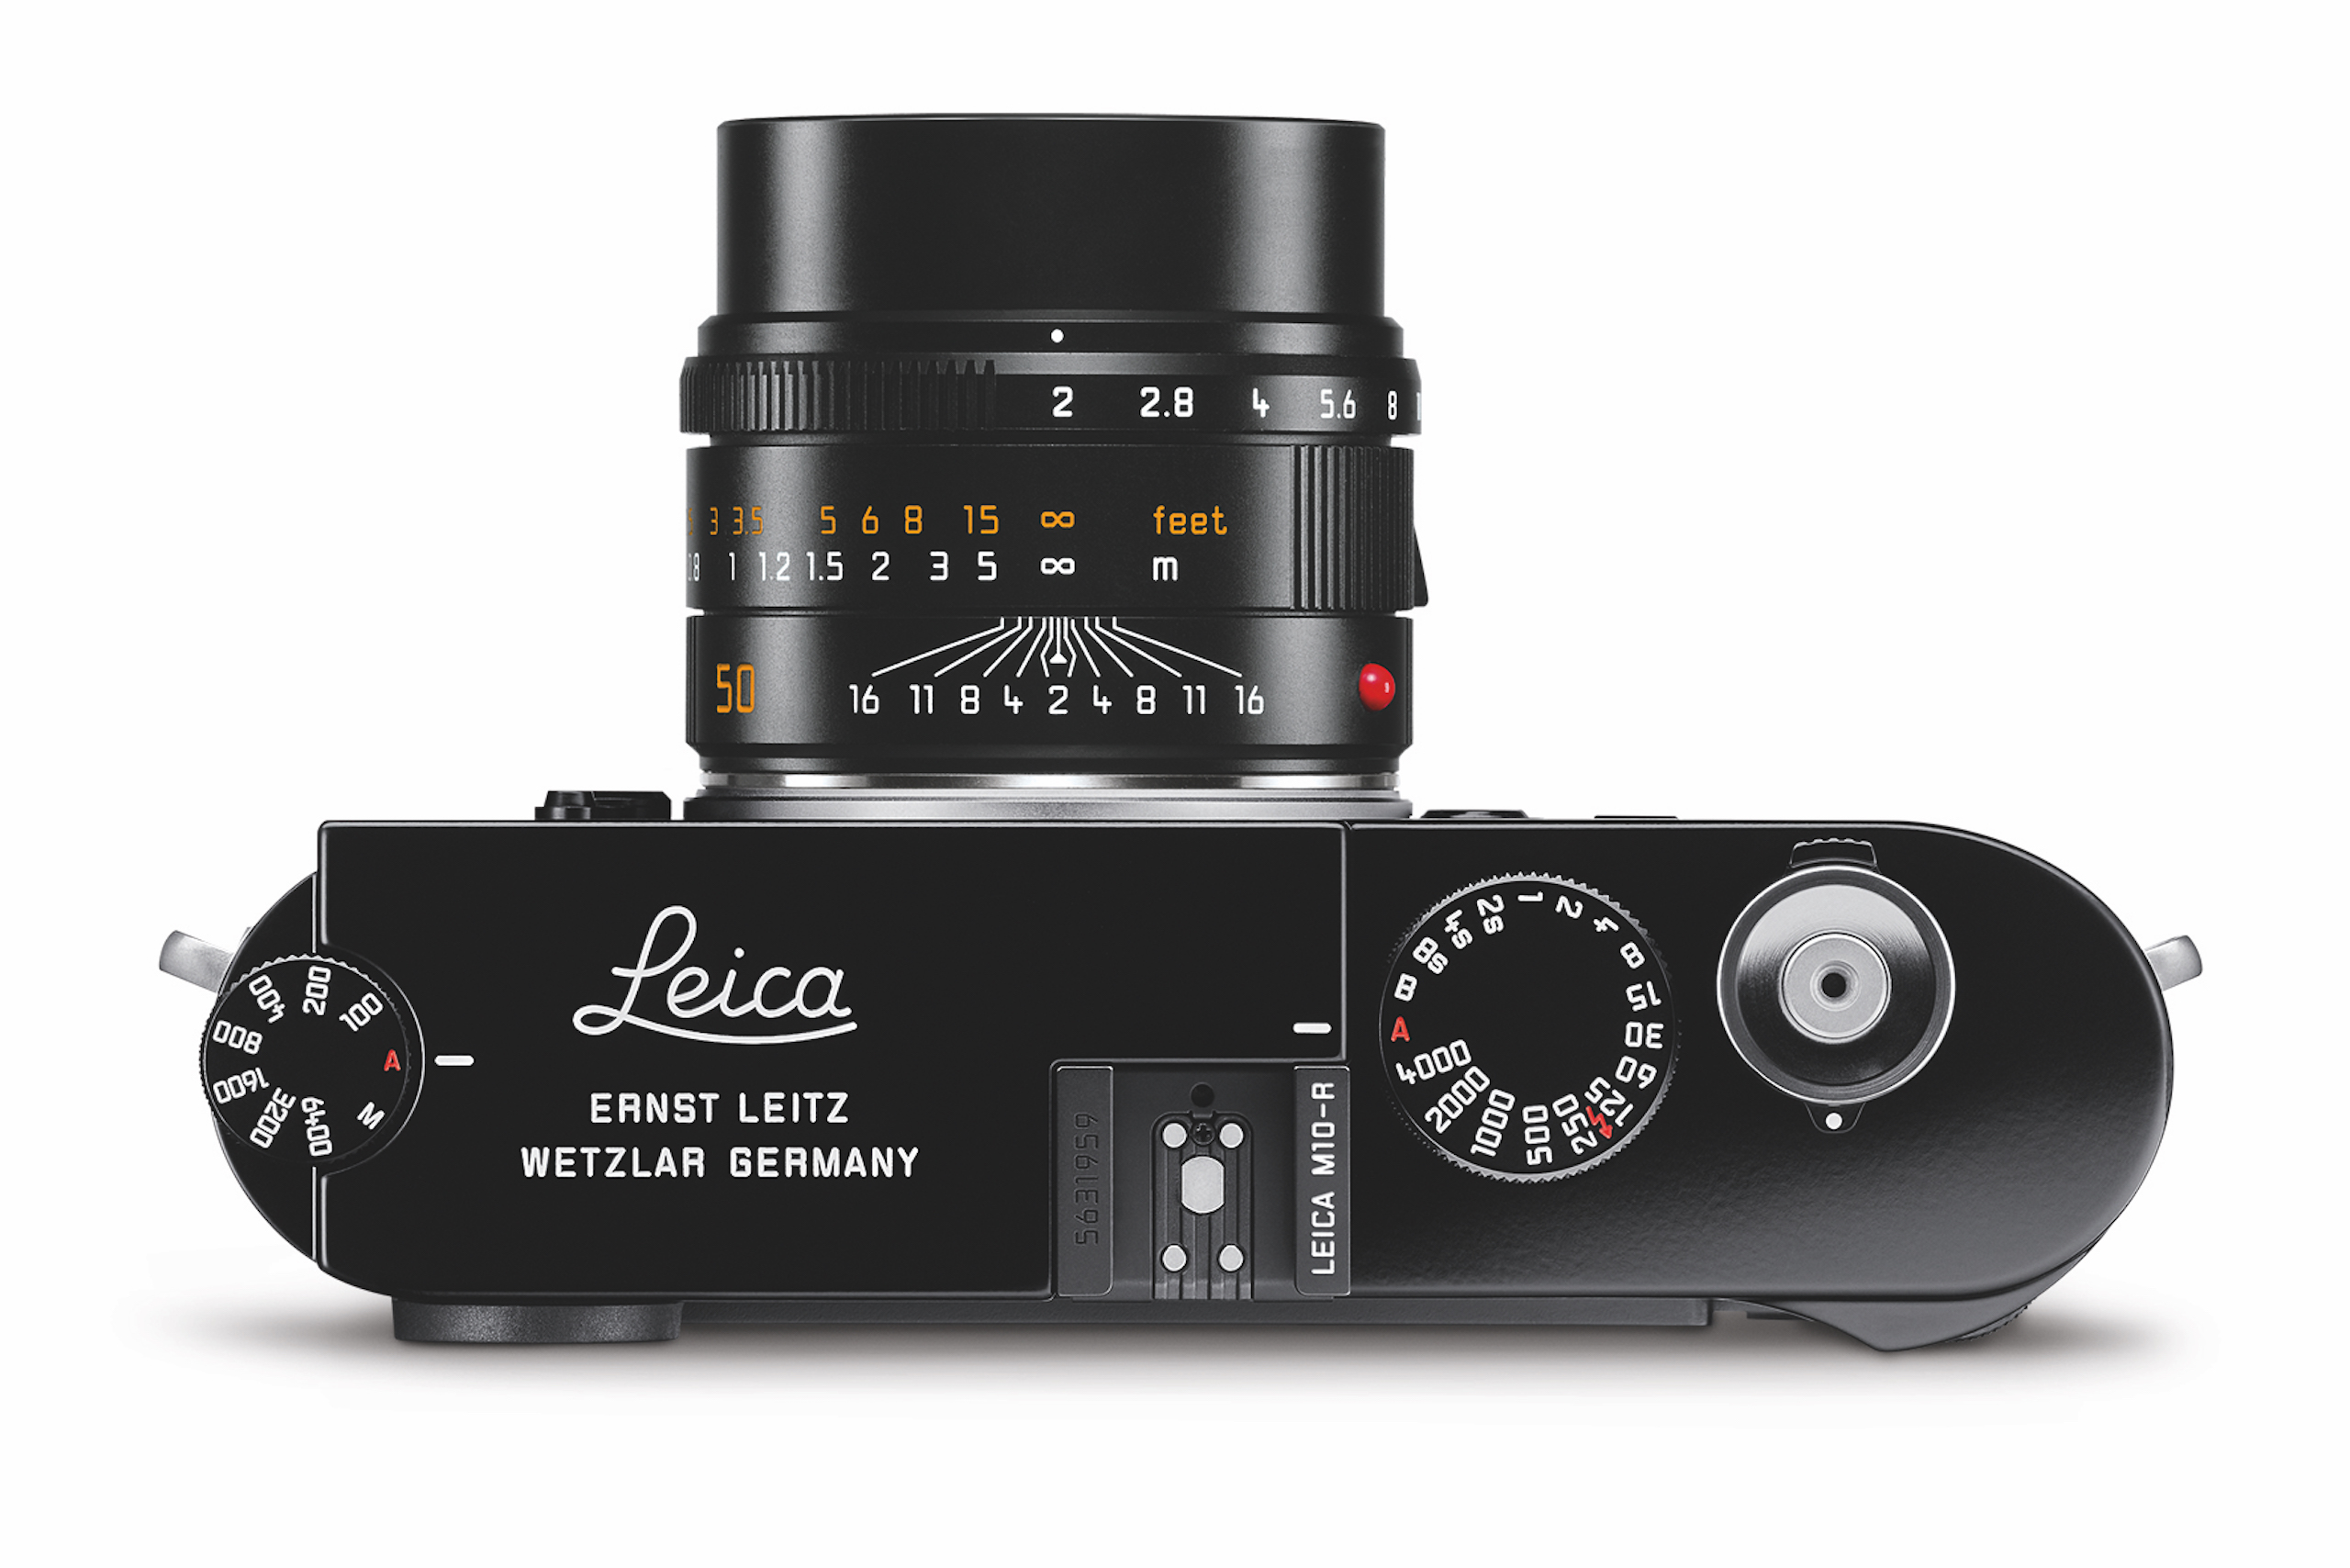 Photography and Lifestyle Items To Buy Now